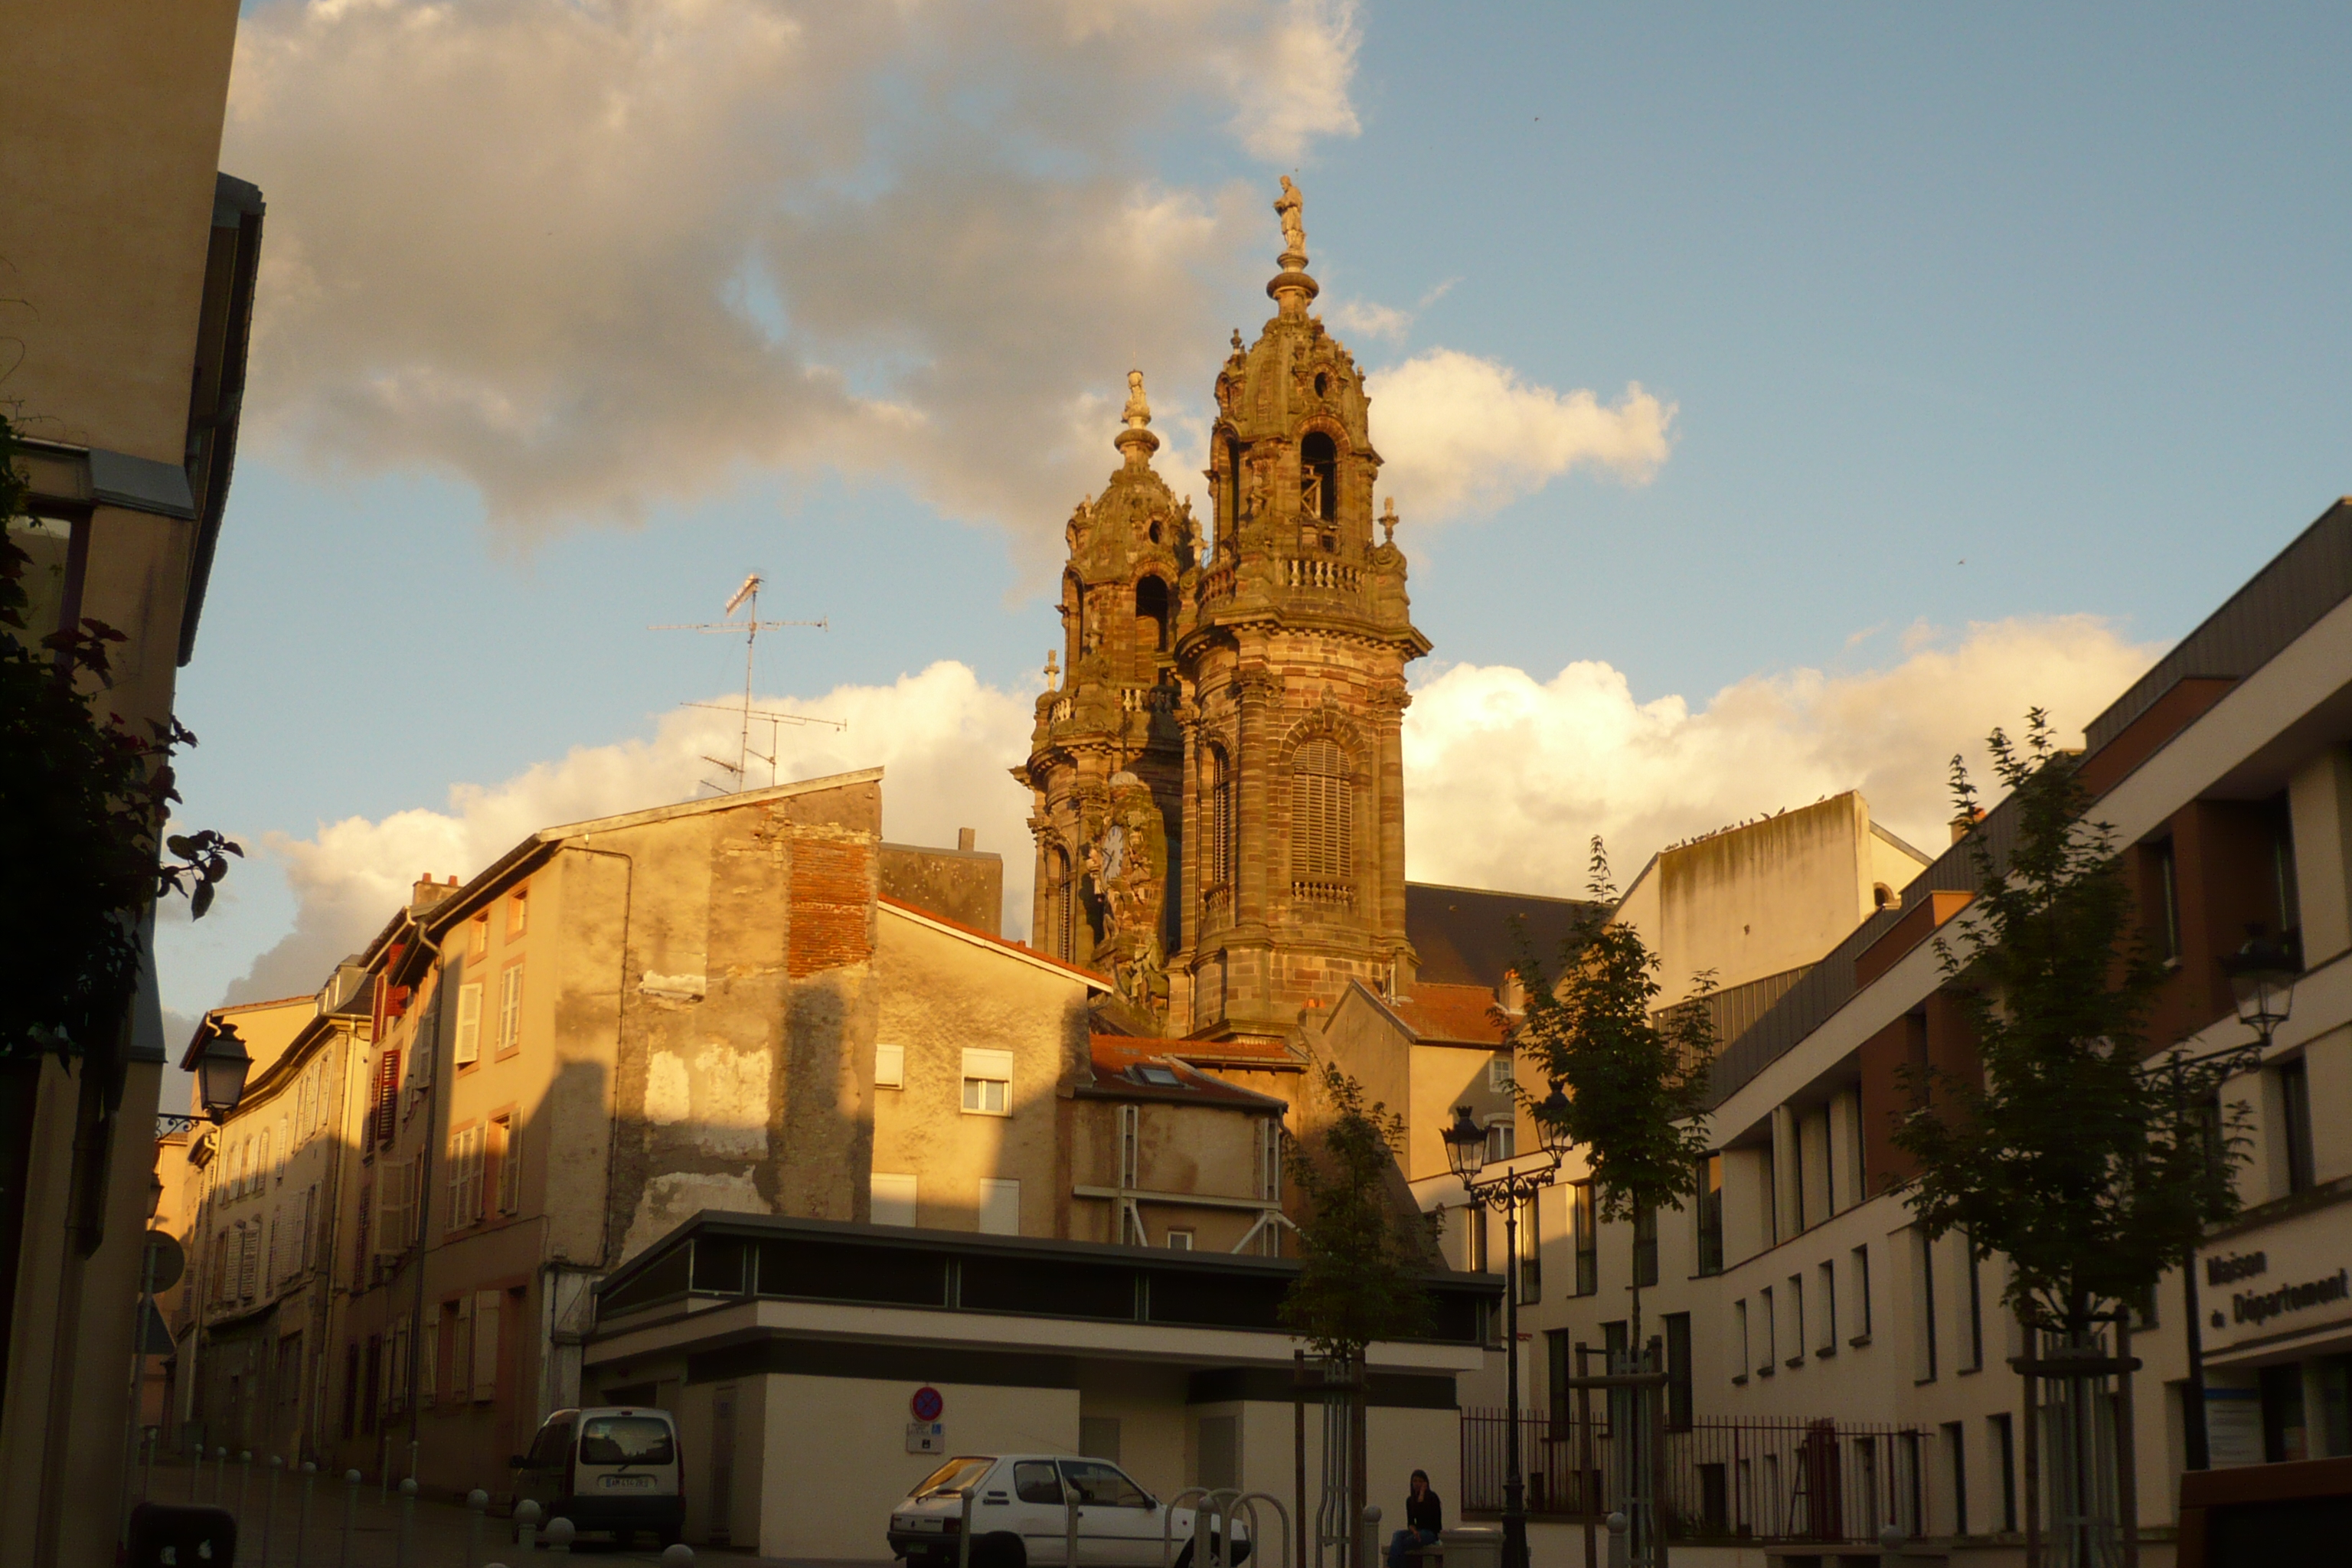 Luneville France  city photos gallery : Church of Saint Jacques in Luneville France seen from Rue de la ...